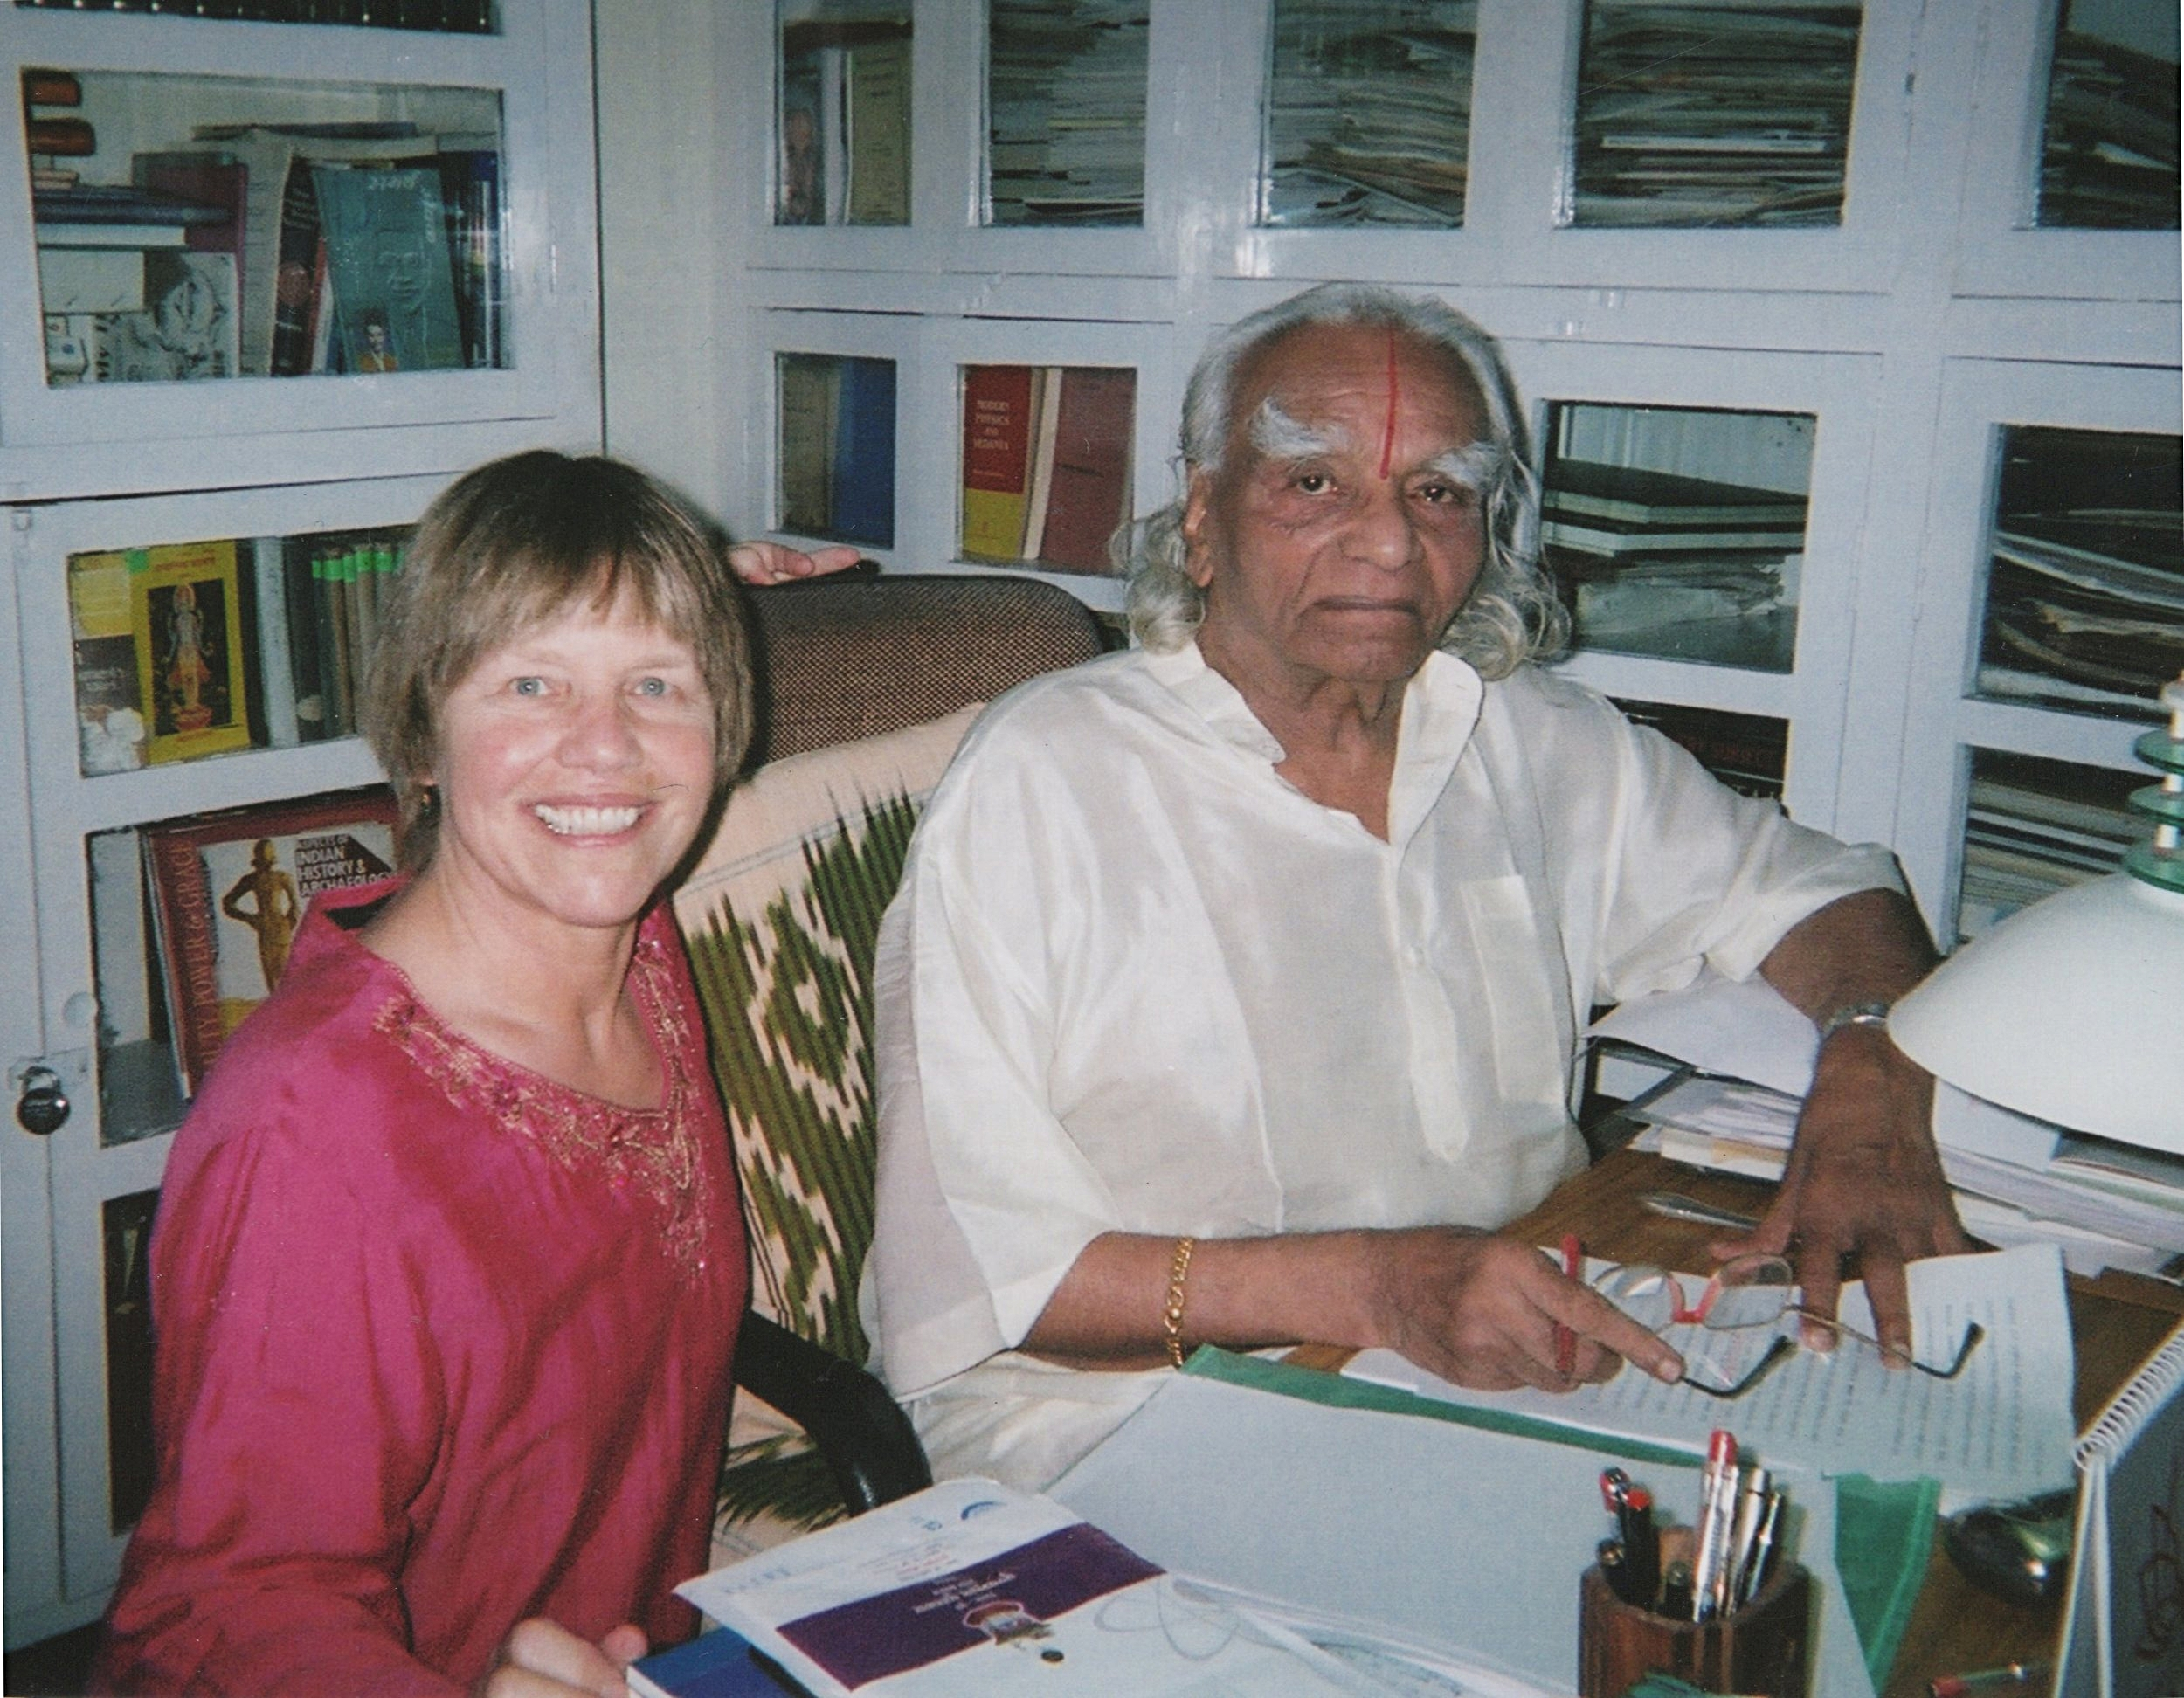 Sarah and B.K.S.Iyengar in his office at the Institute in Pune, India